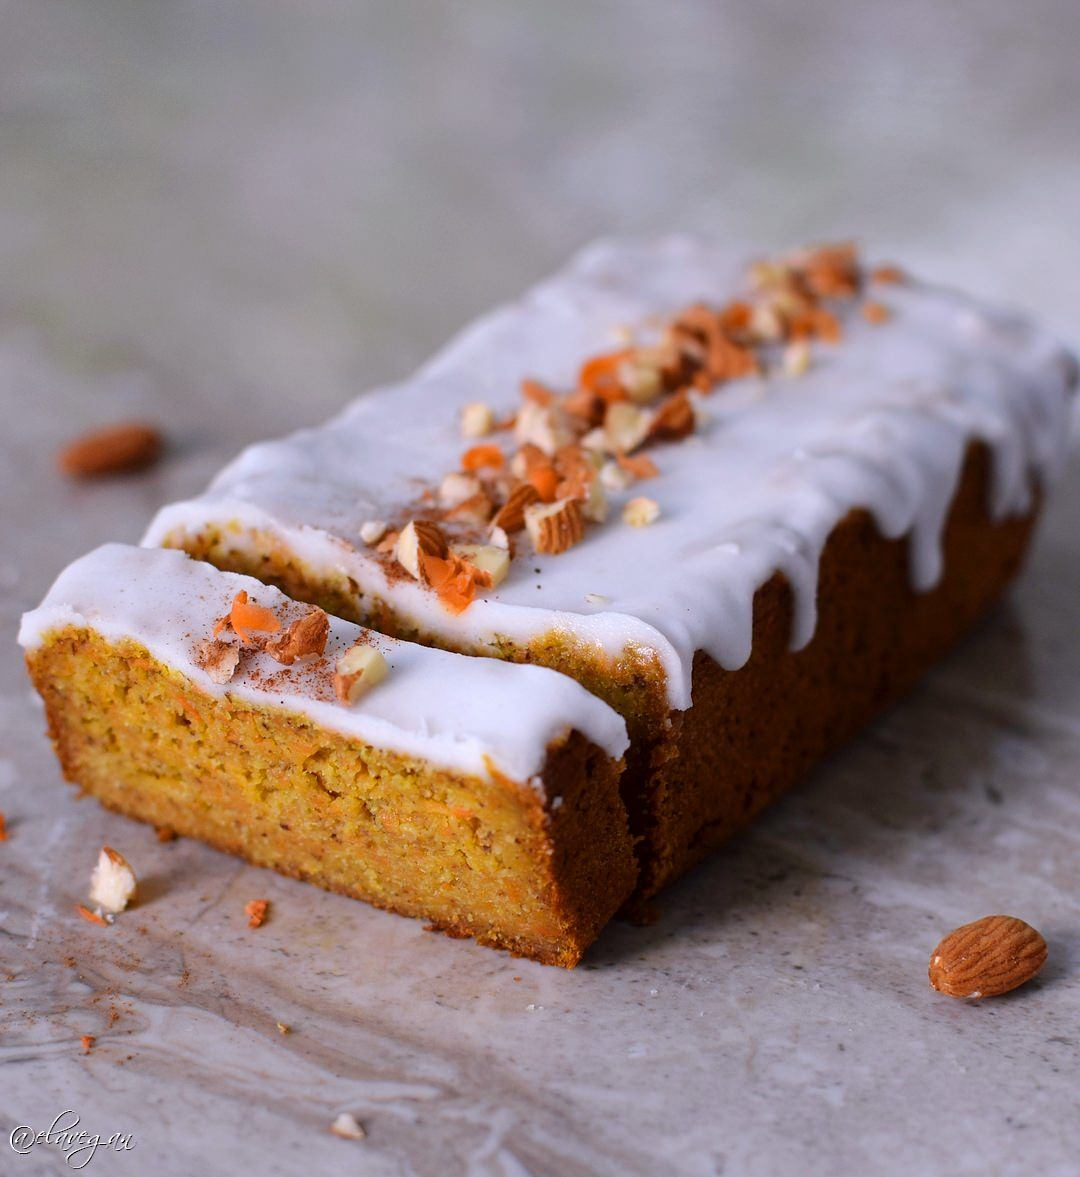 Vegan gluten free carrot cake with a refined sugar-free Erythritol icing